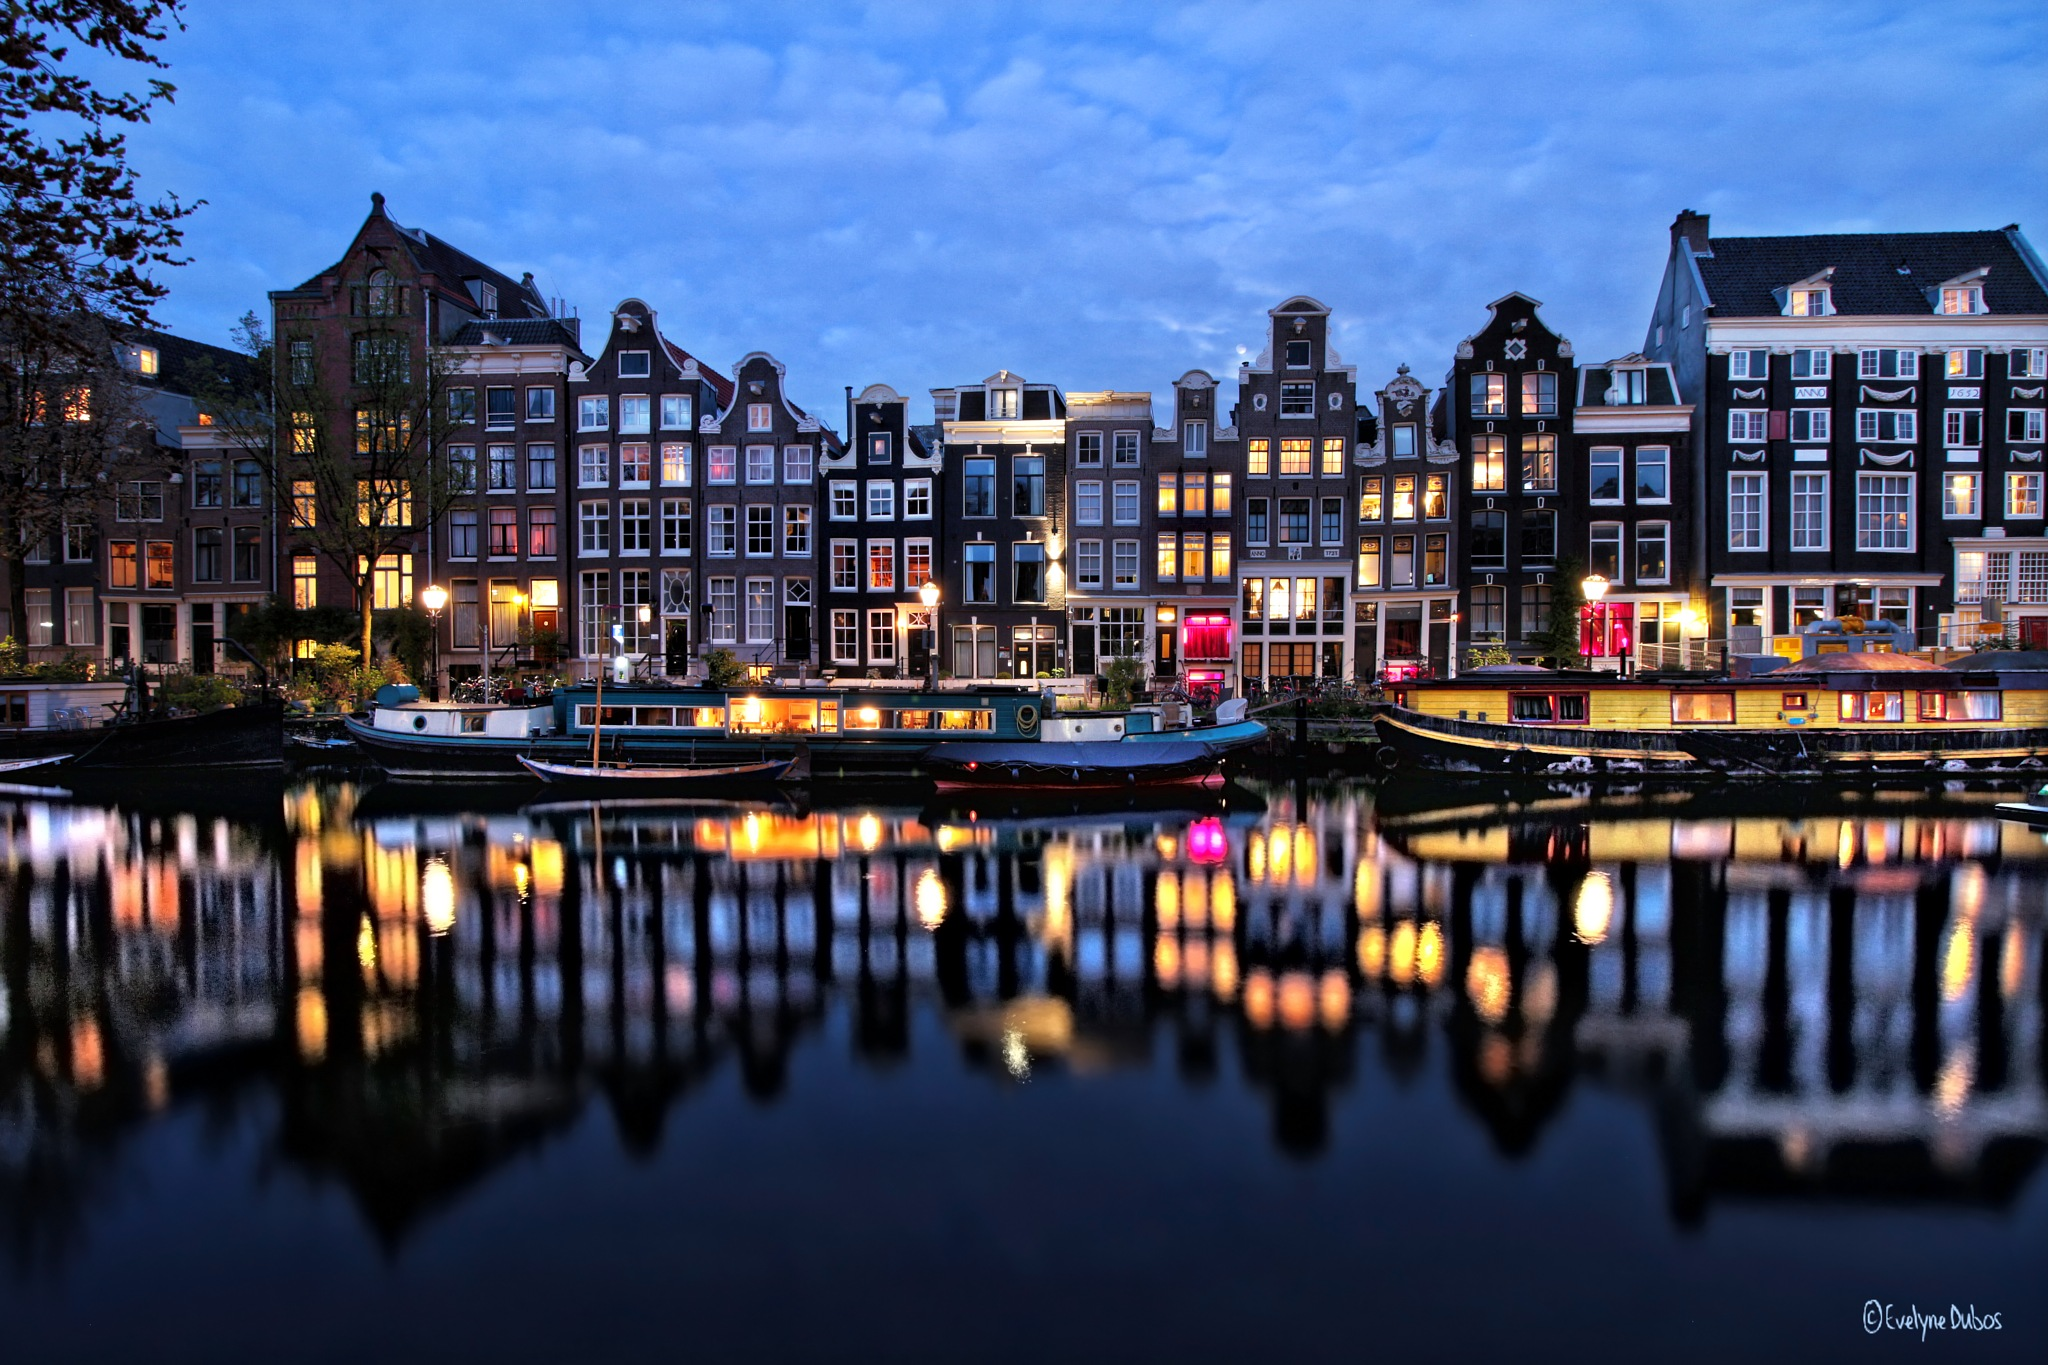 Amsterdam by night. by Evelyne Dubos